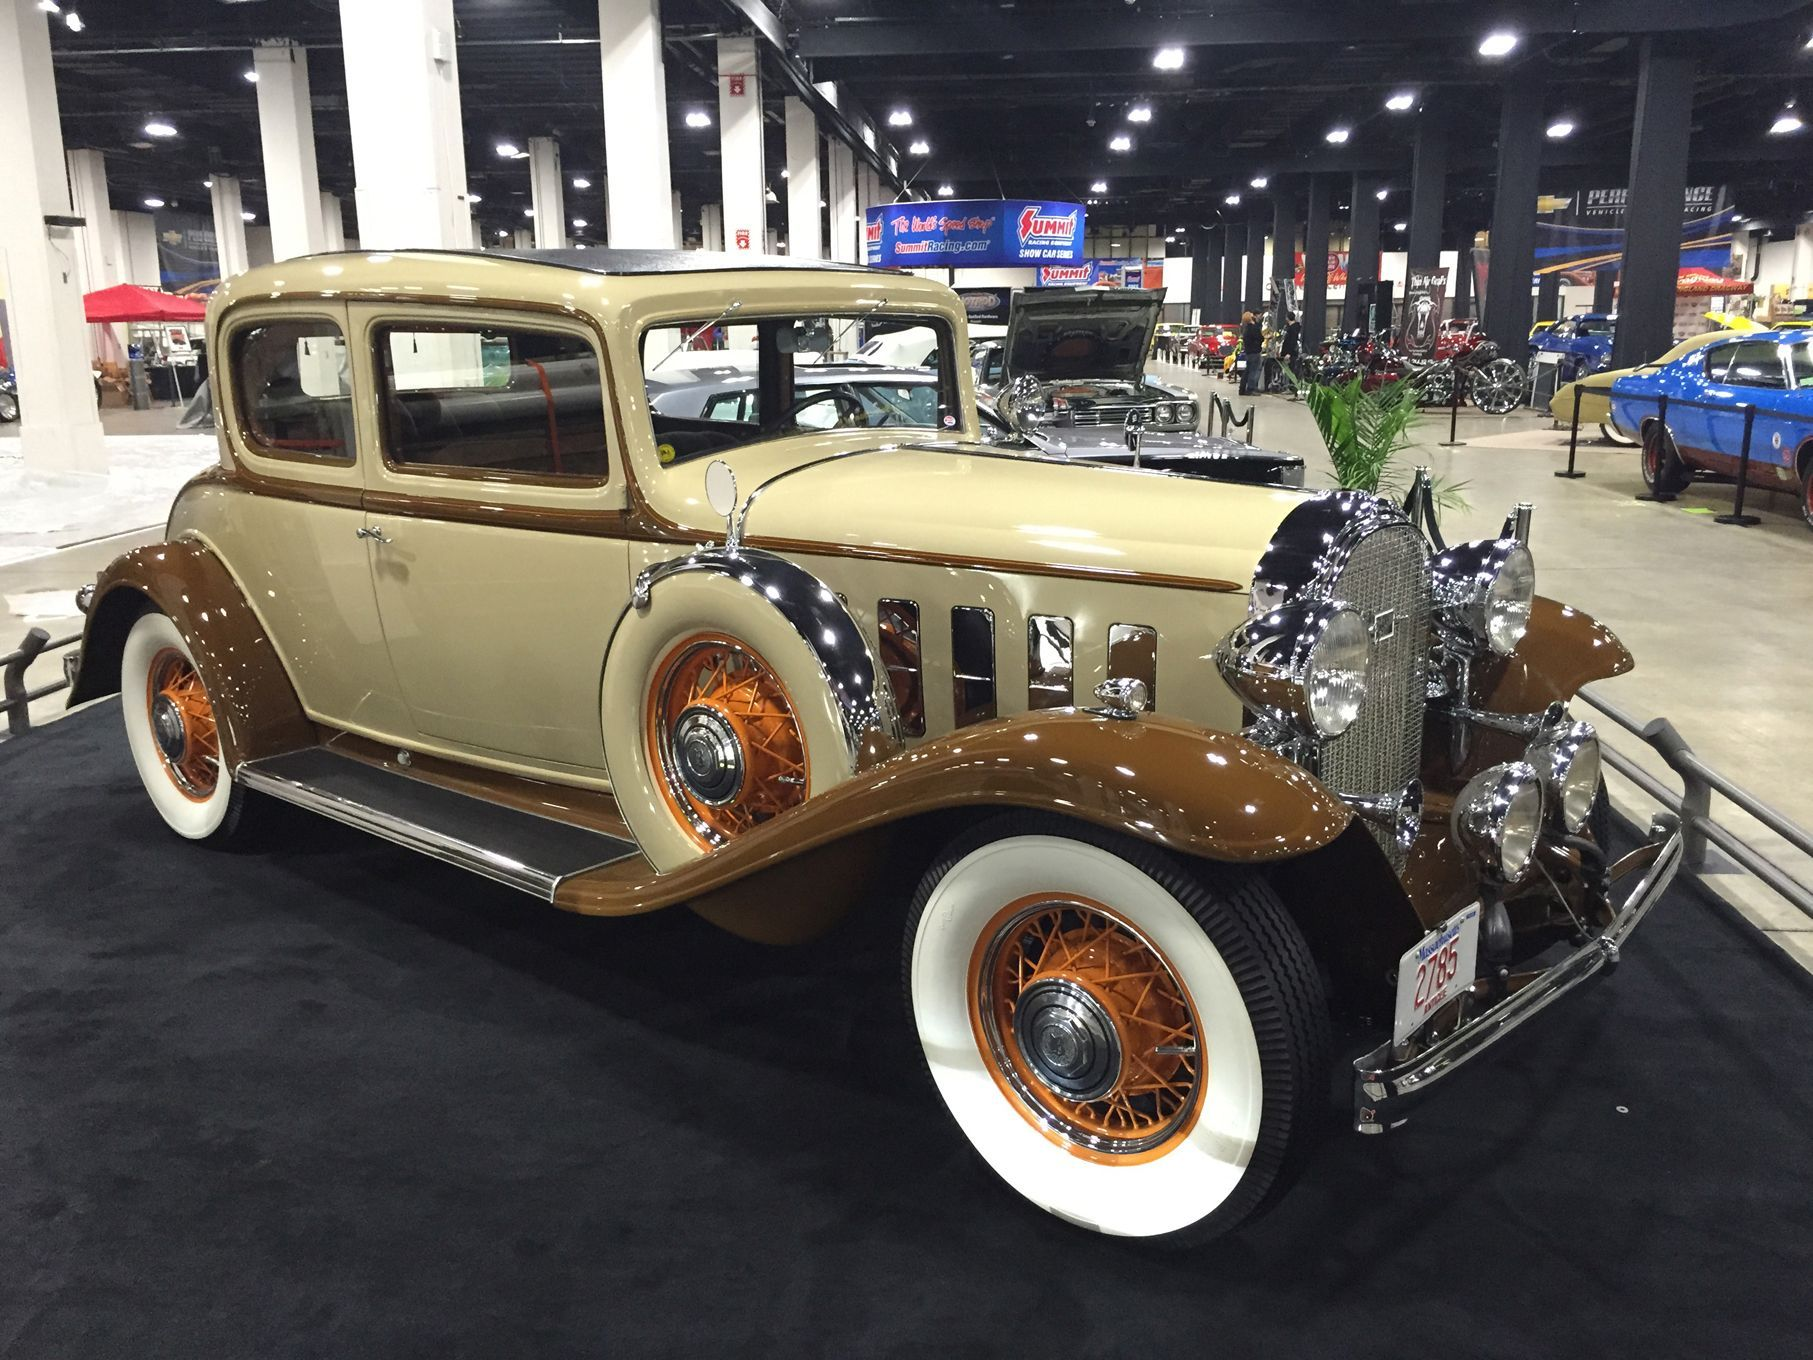 2015-boston-world-of-wheels-1932-buick-victoria-coupe.jpg (1813 ...